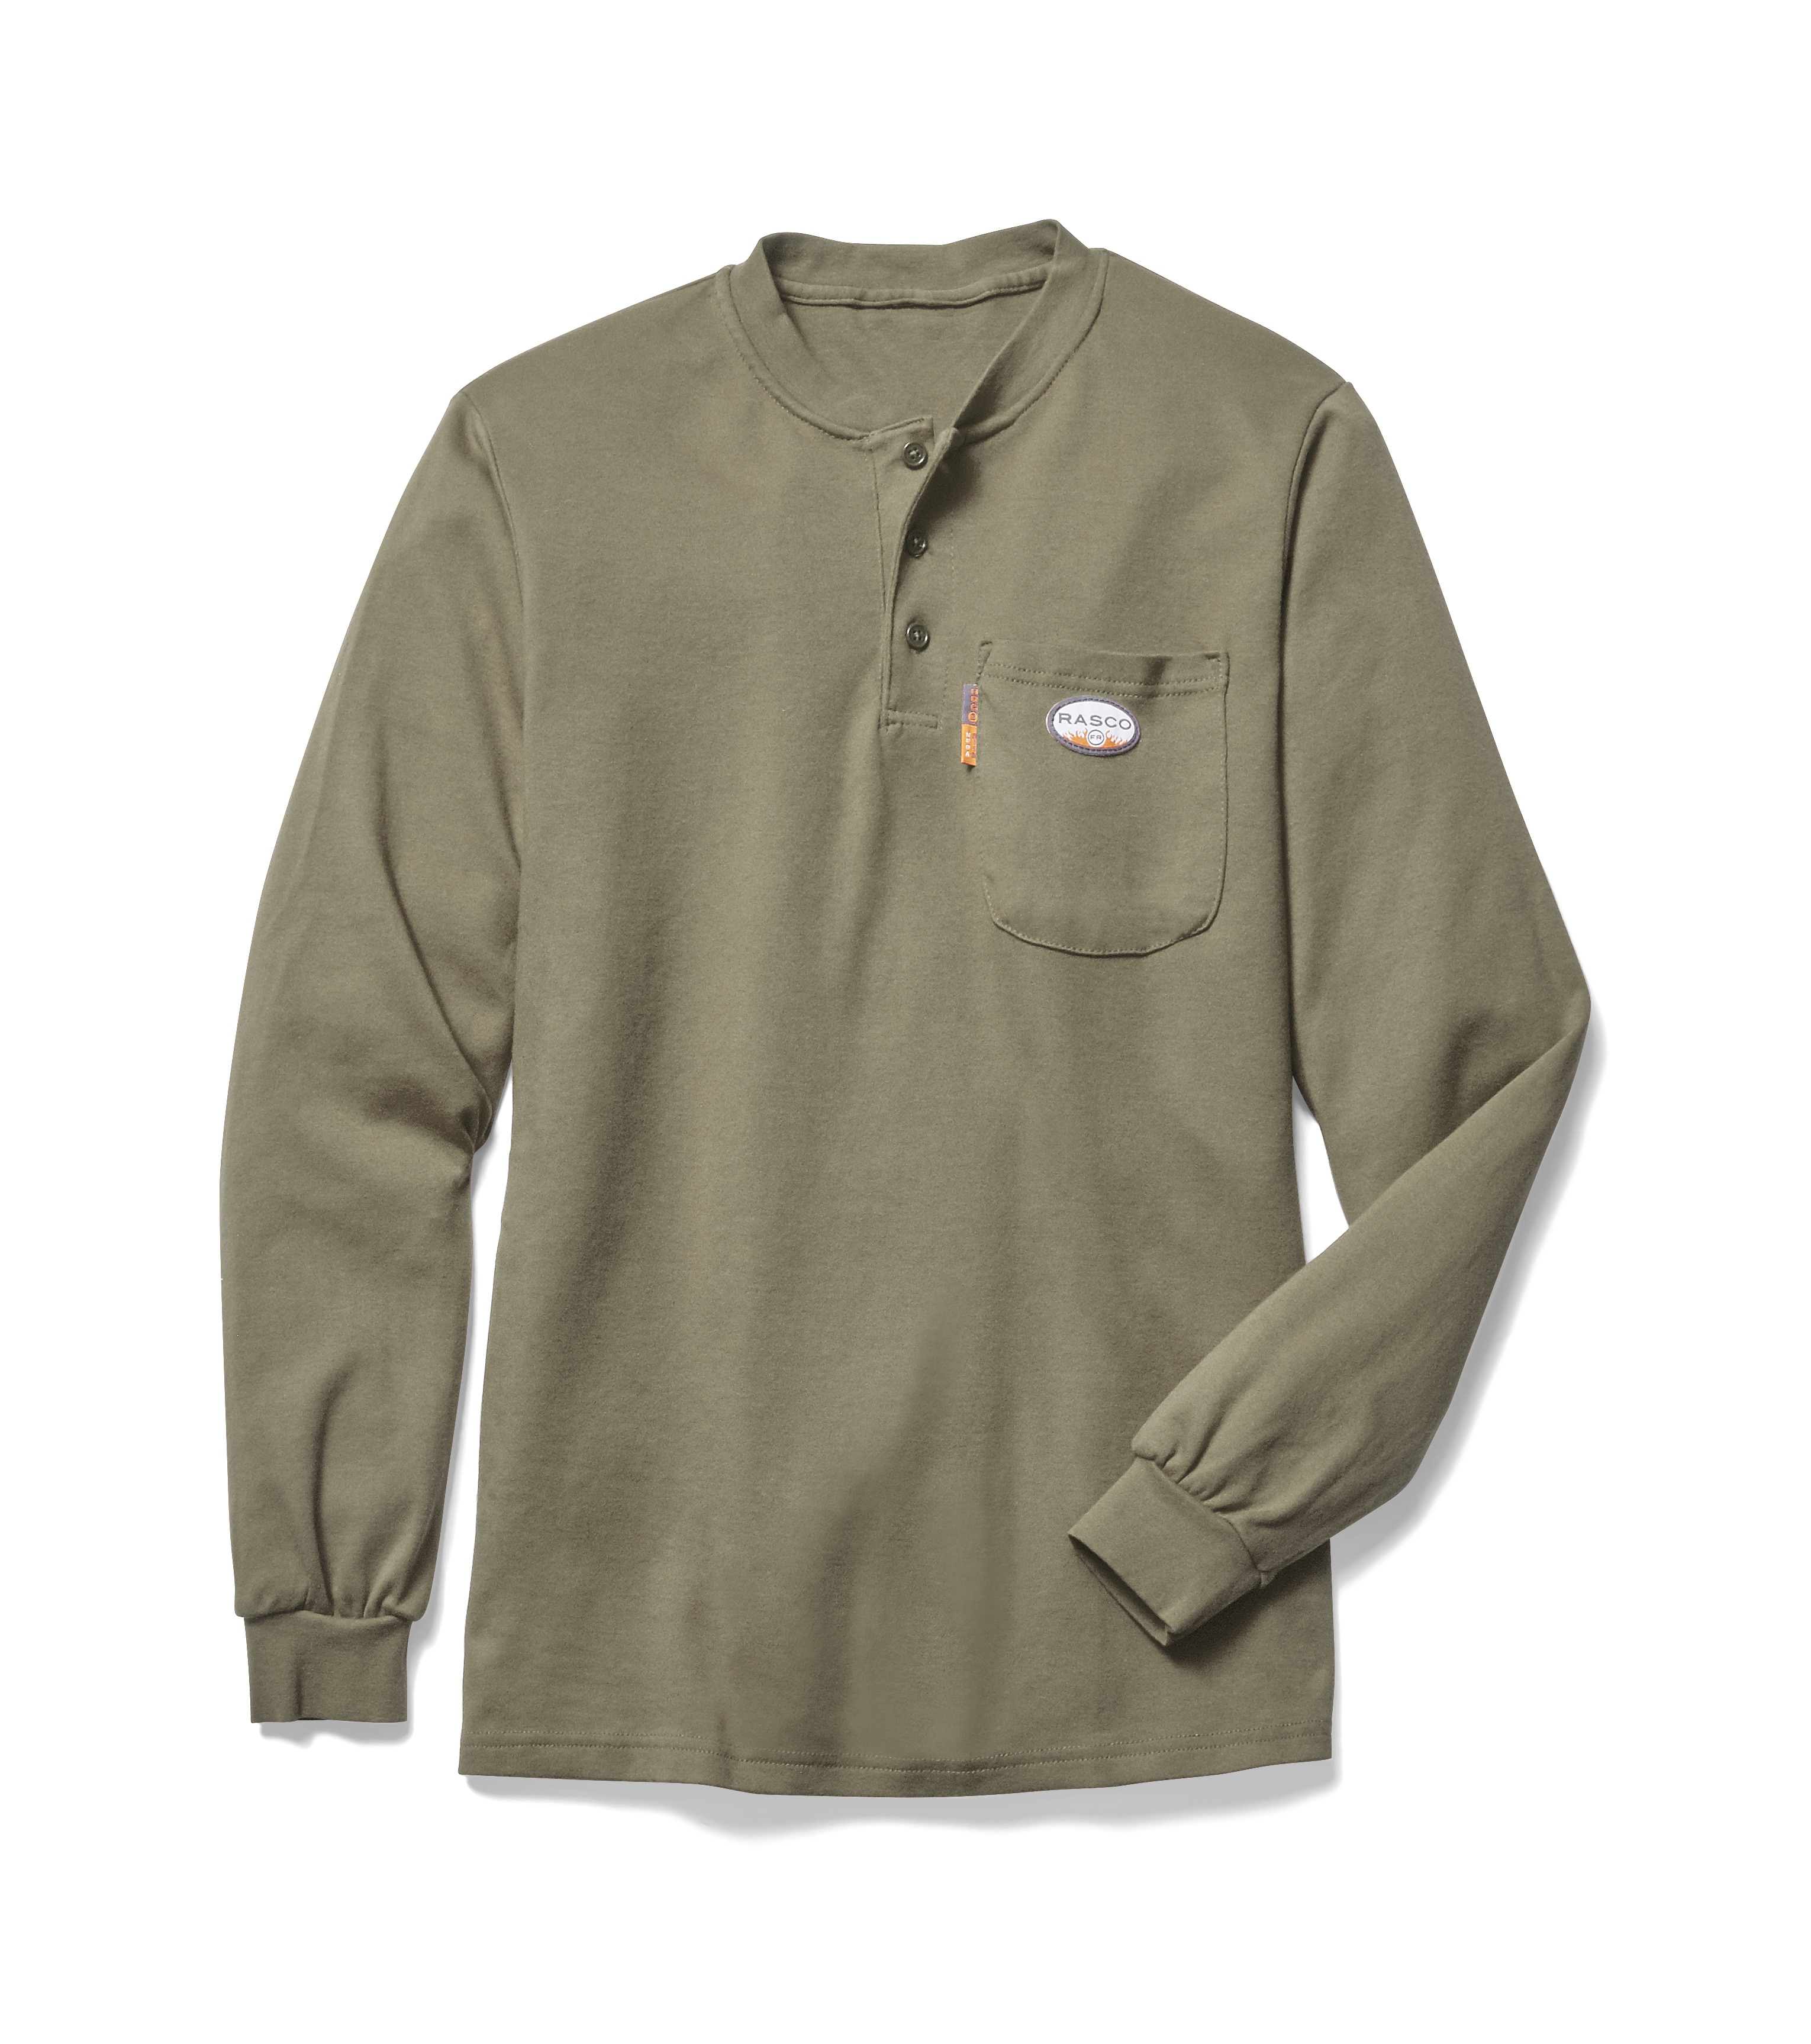 Rasco Arc Rated Khaki Henley Ktf452